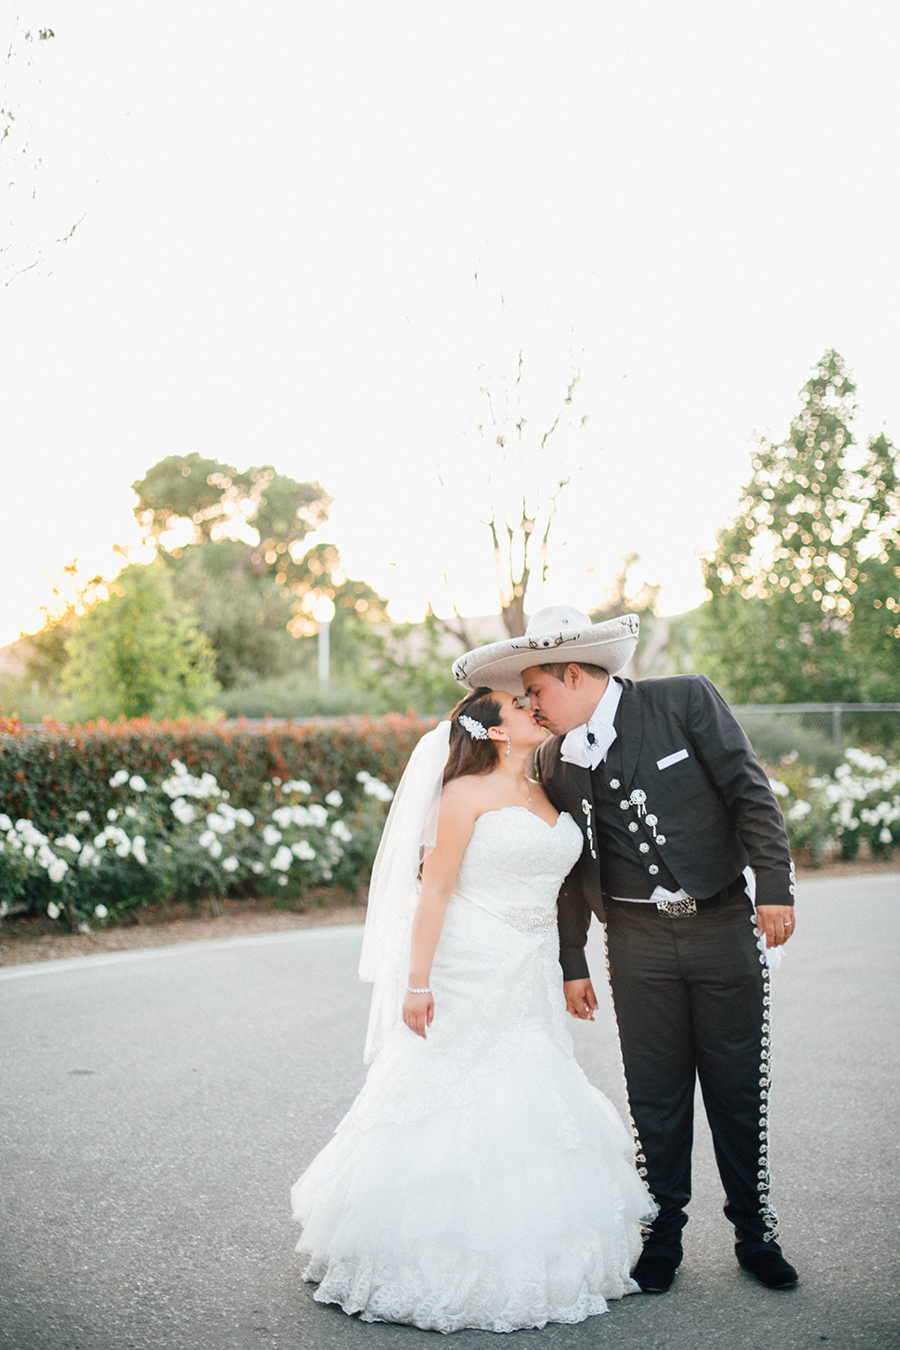 mexican-charro-wedding-crestmoremanor-riverside-losangeles-by-gabrielagandara-72